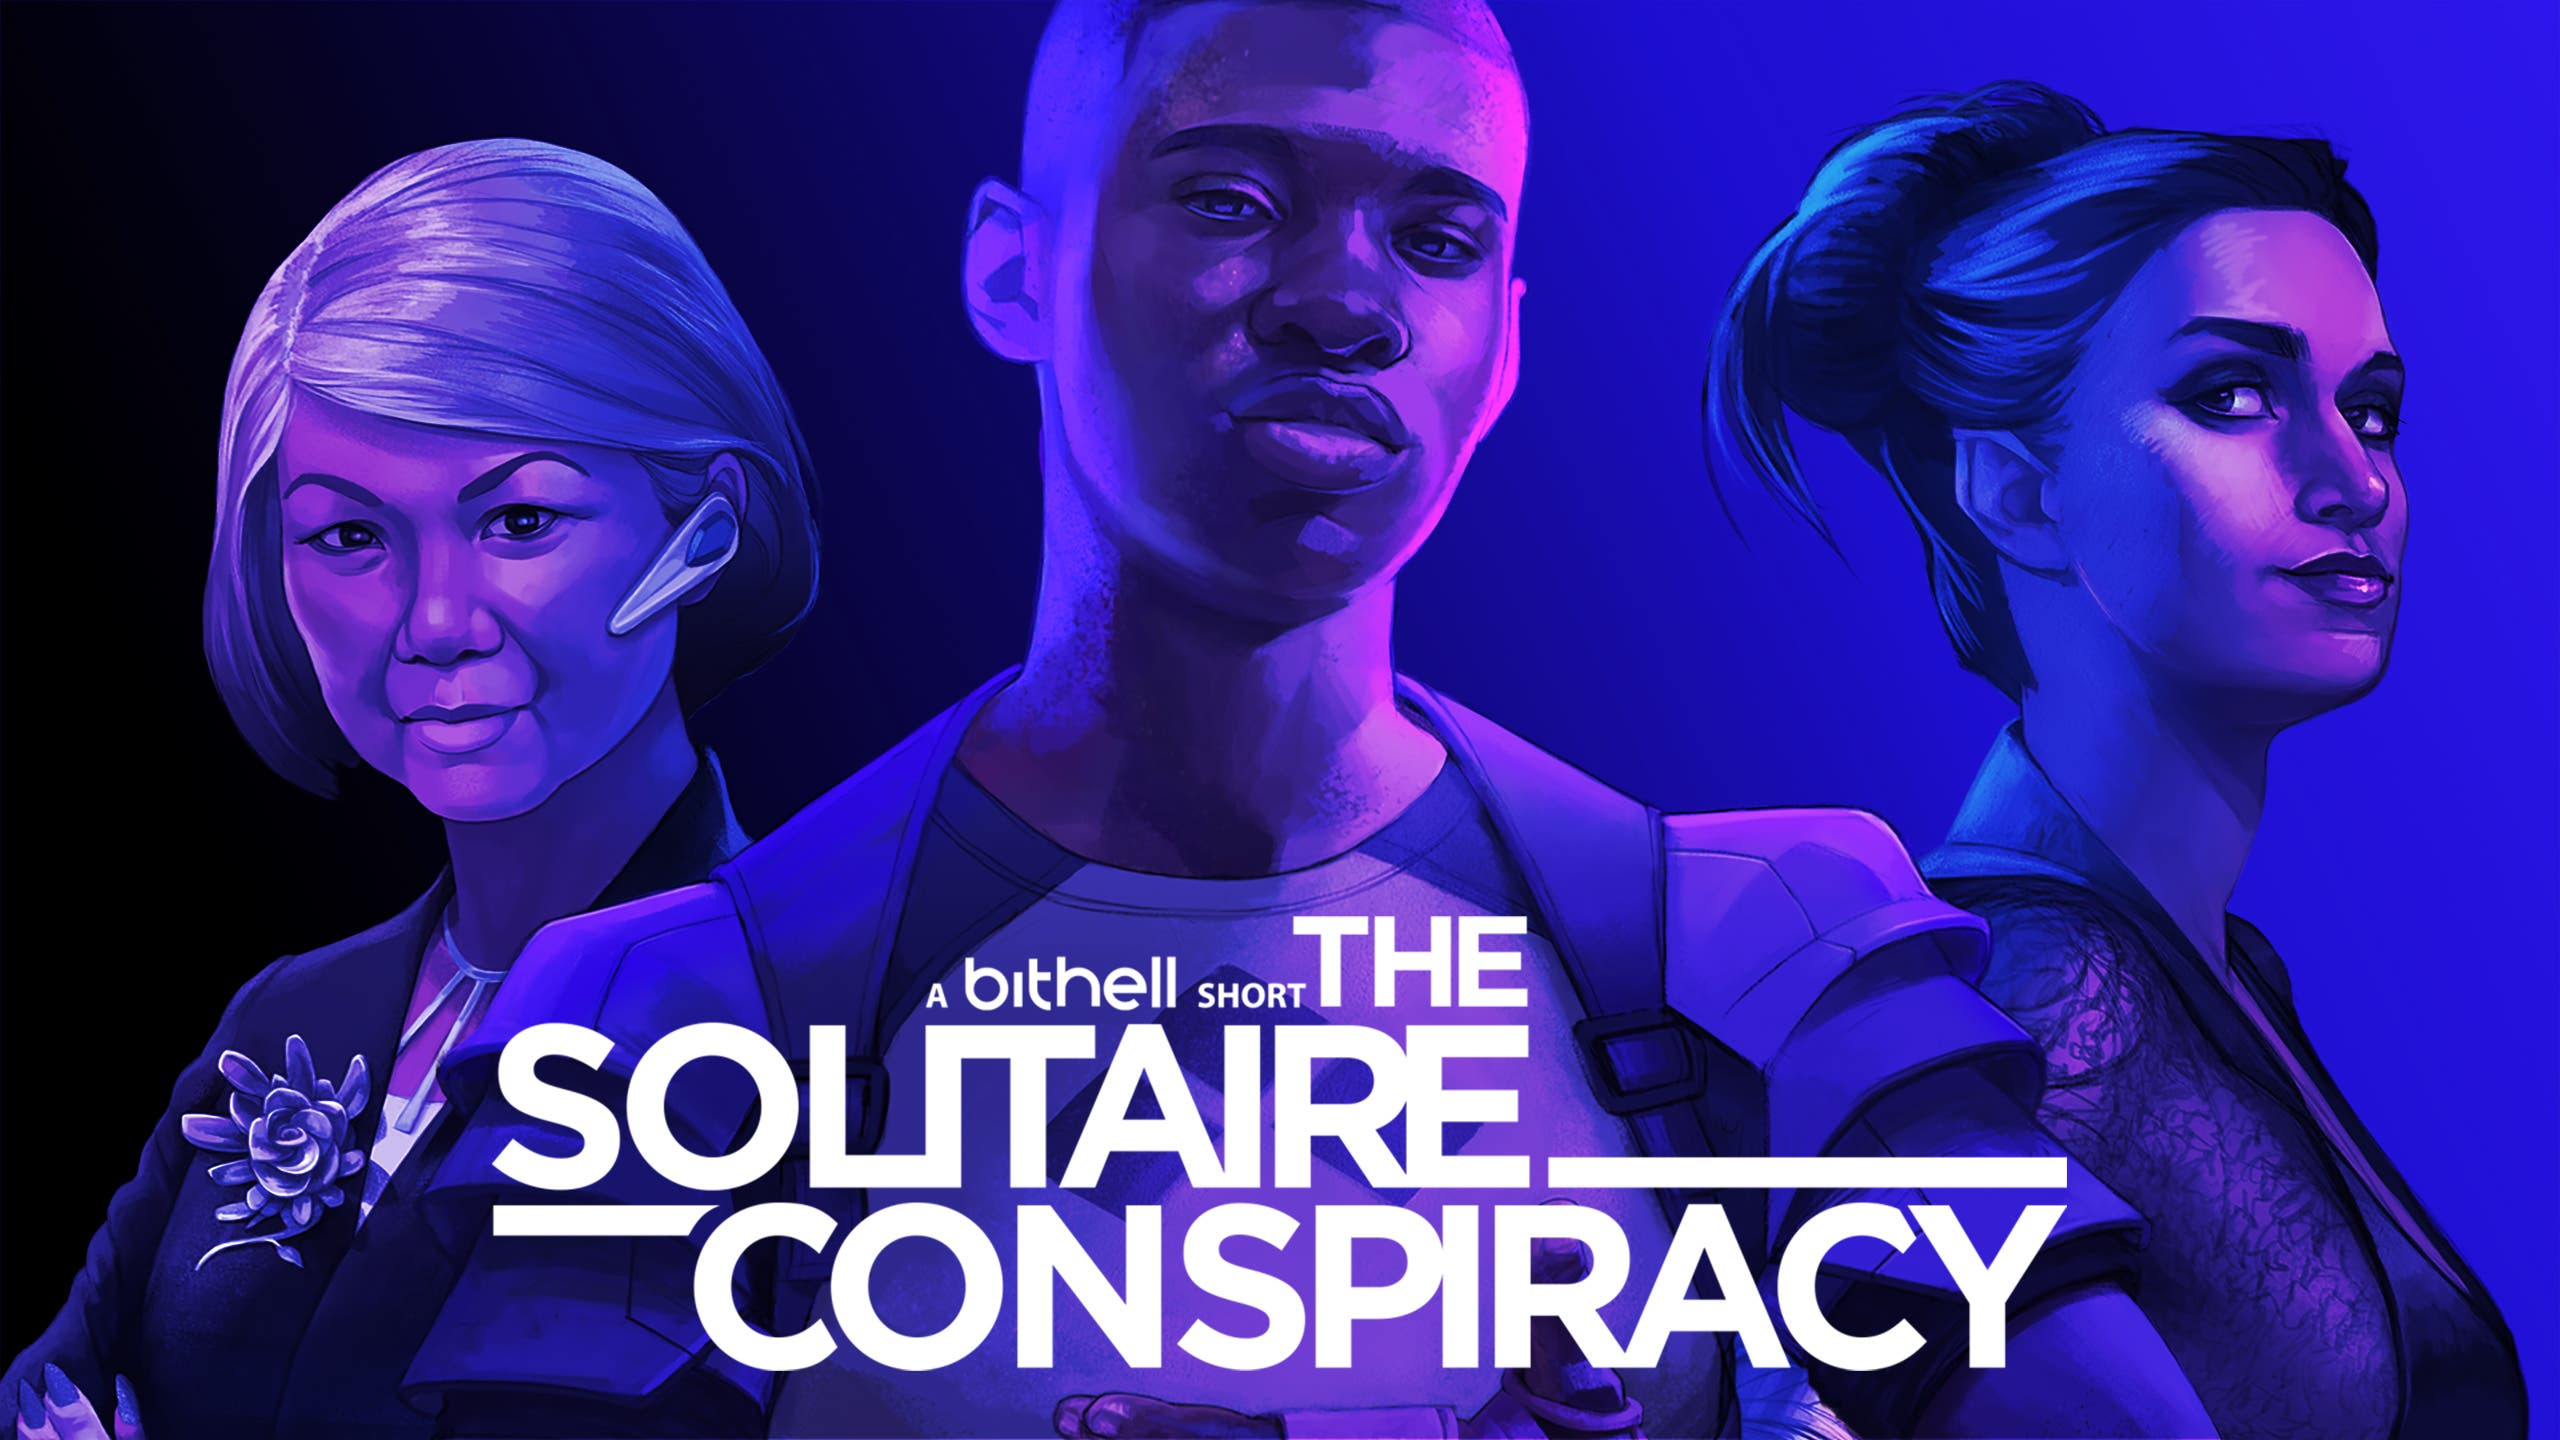 solitaire conspiracy key art